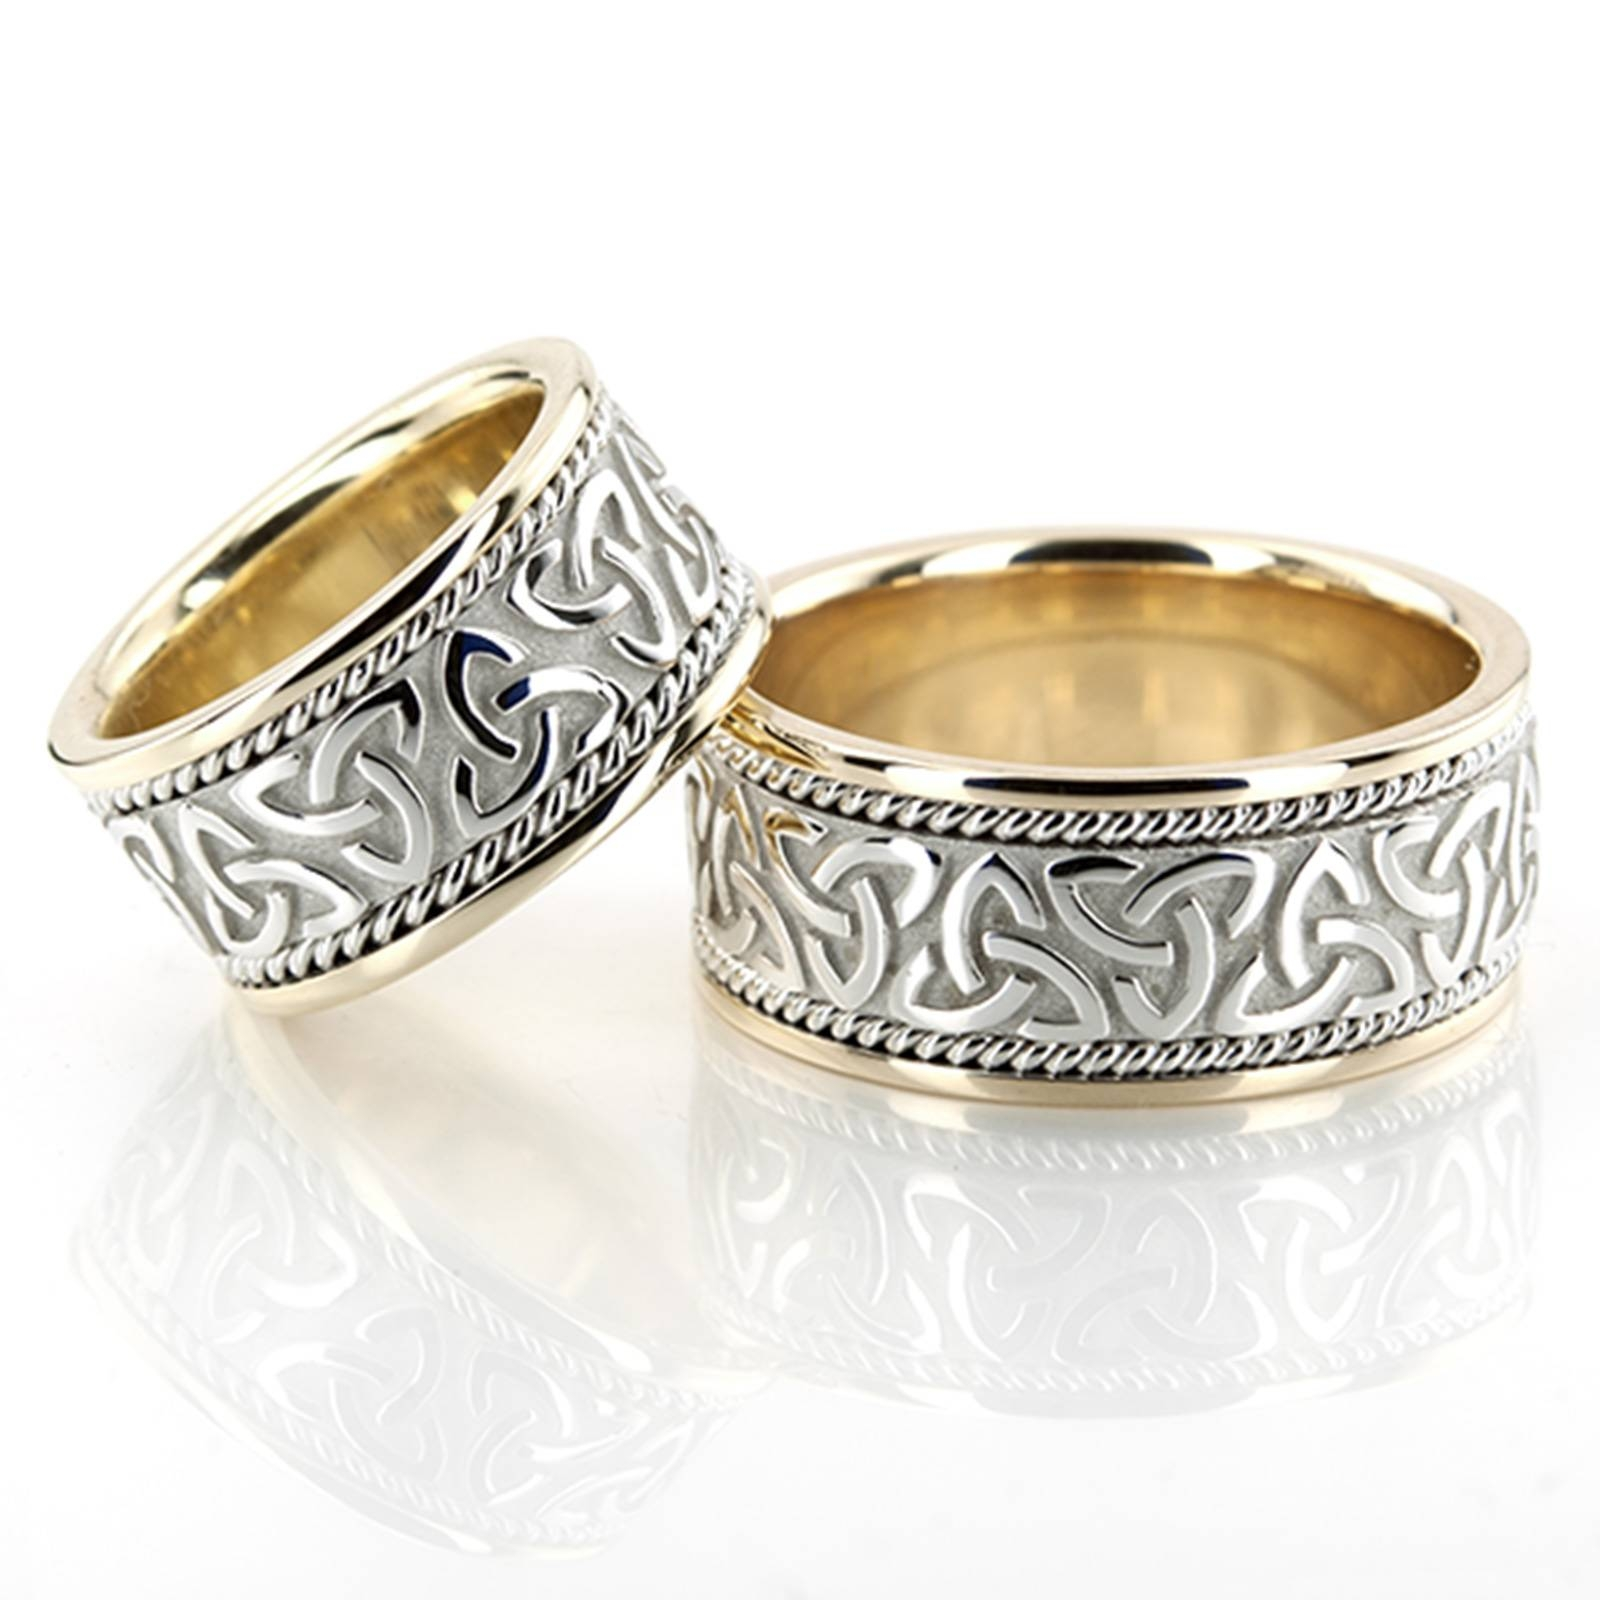 21 Irish Wedding Rings Sets, Gold Celtic Wedding Ring Set Pertaining To Irish Wedding Bands For Women (View 2 of 15)